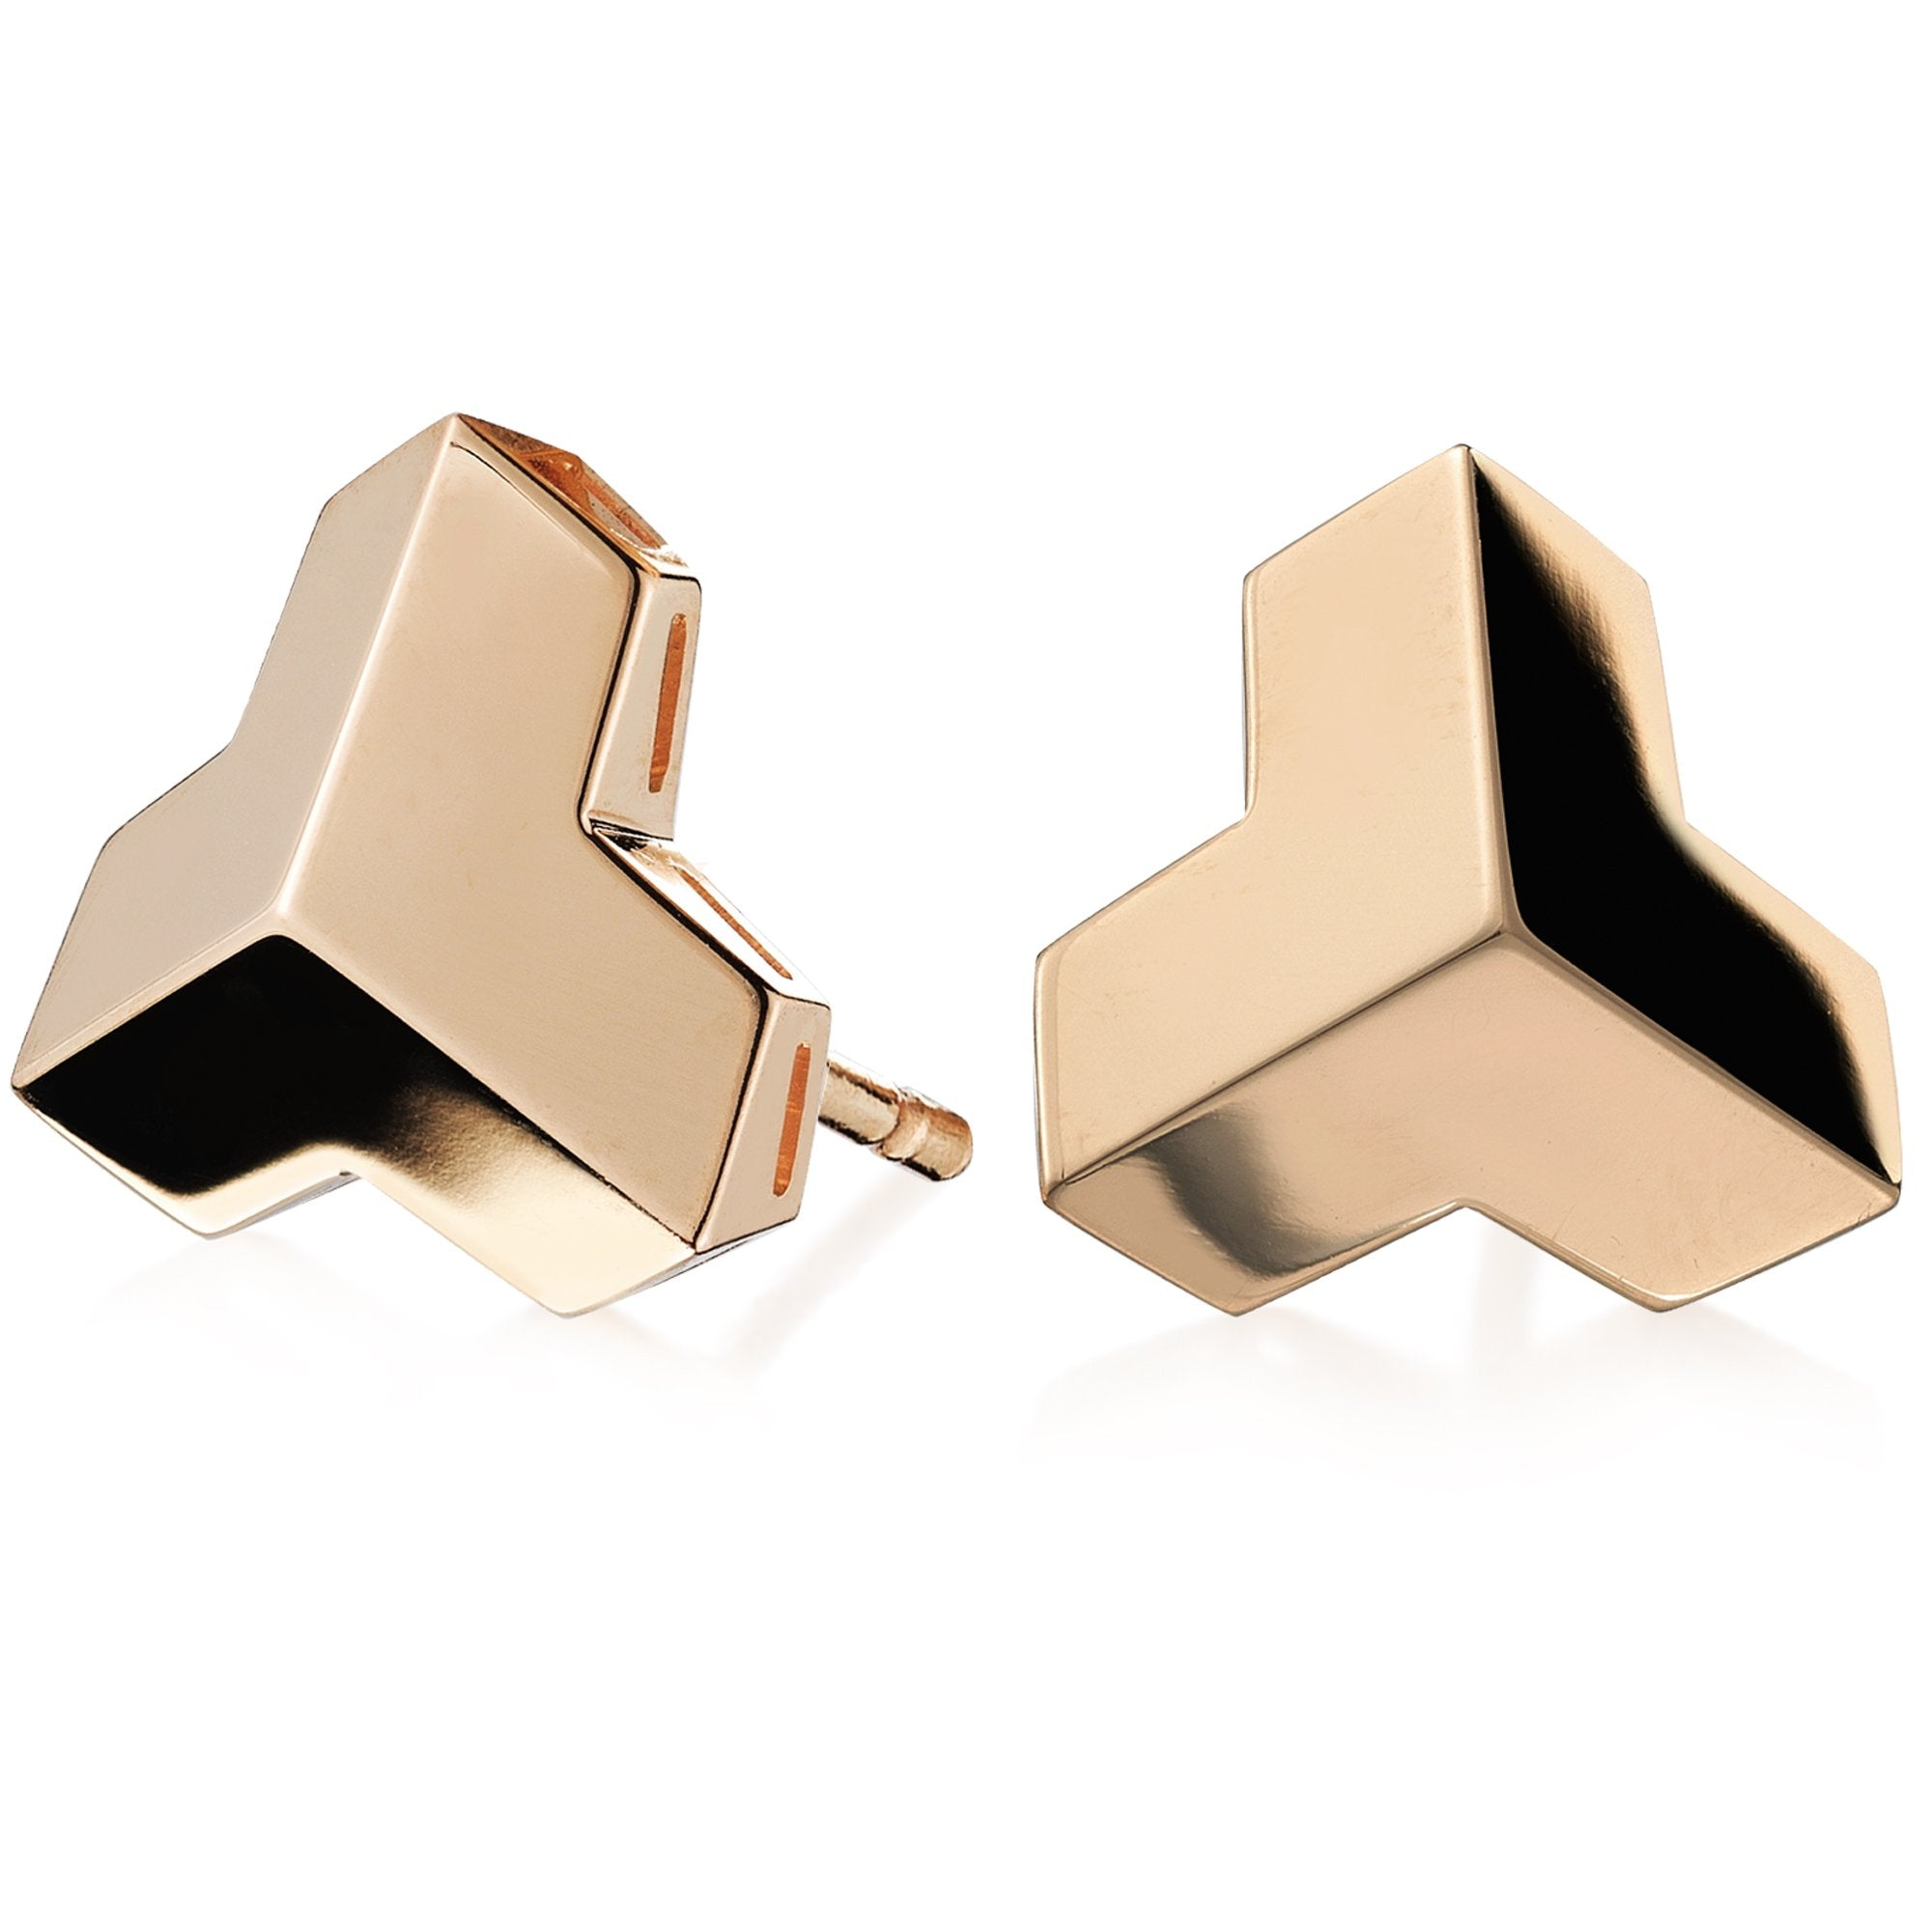 Rose Gold 'Brillantissimo' Stud Earrings, Grande - Paolo Costagli - 1